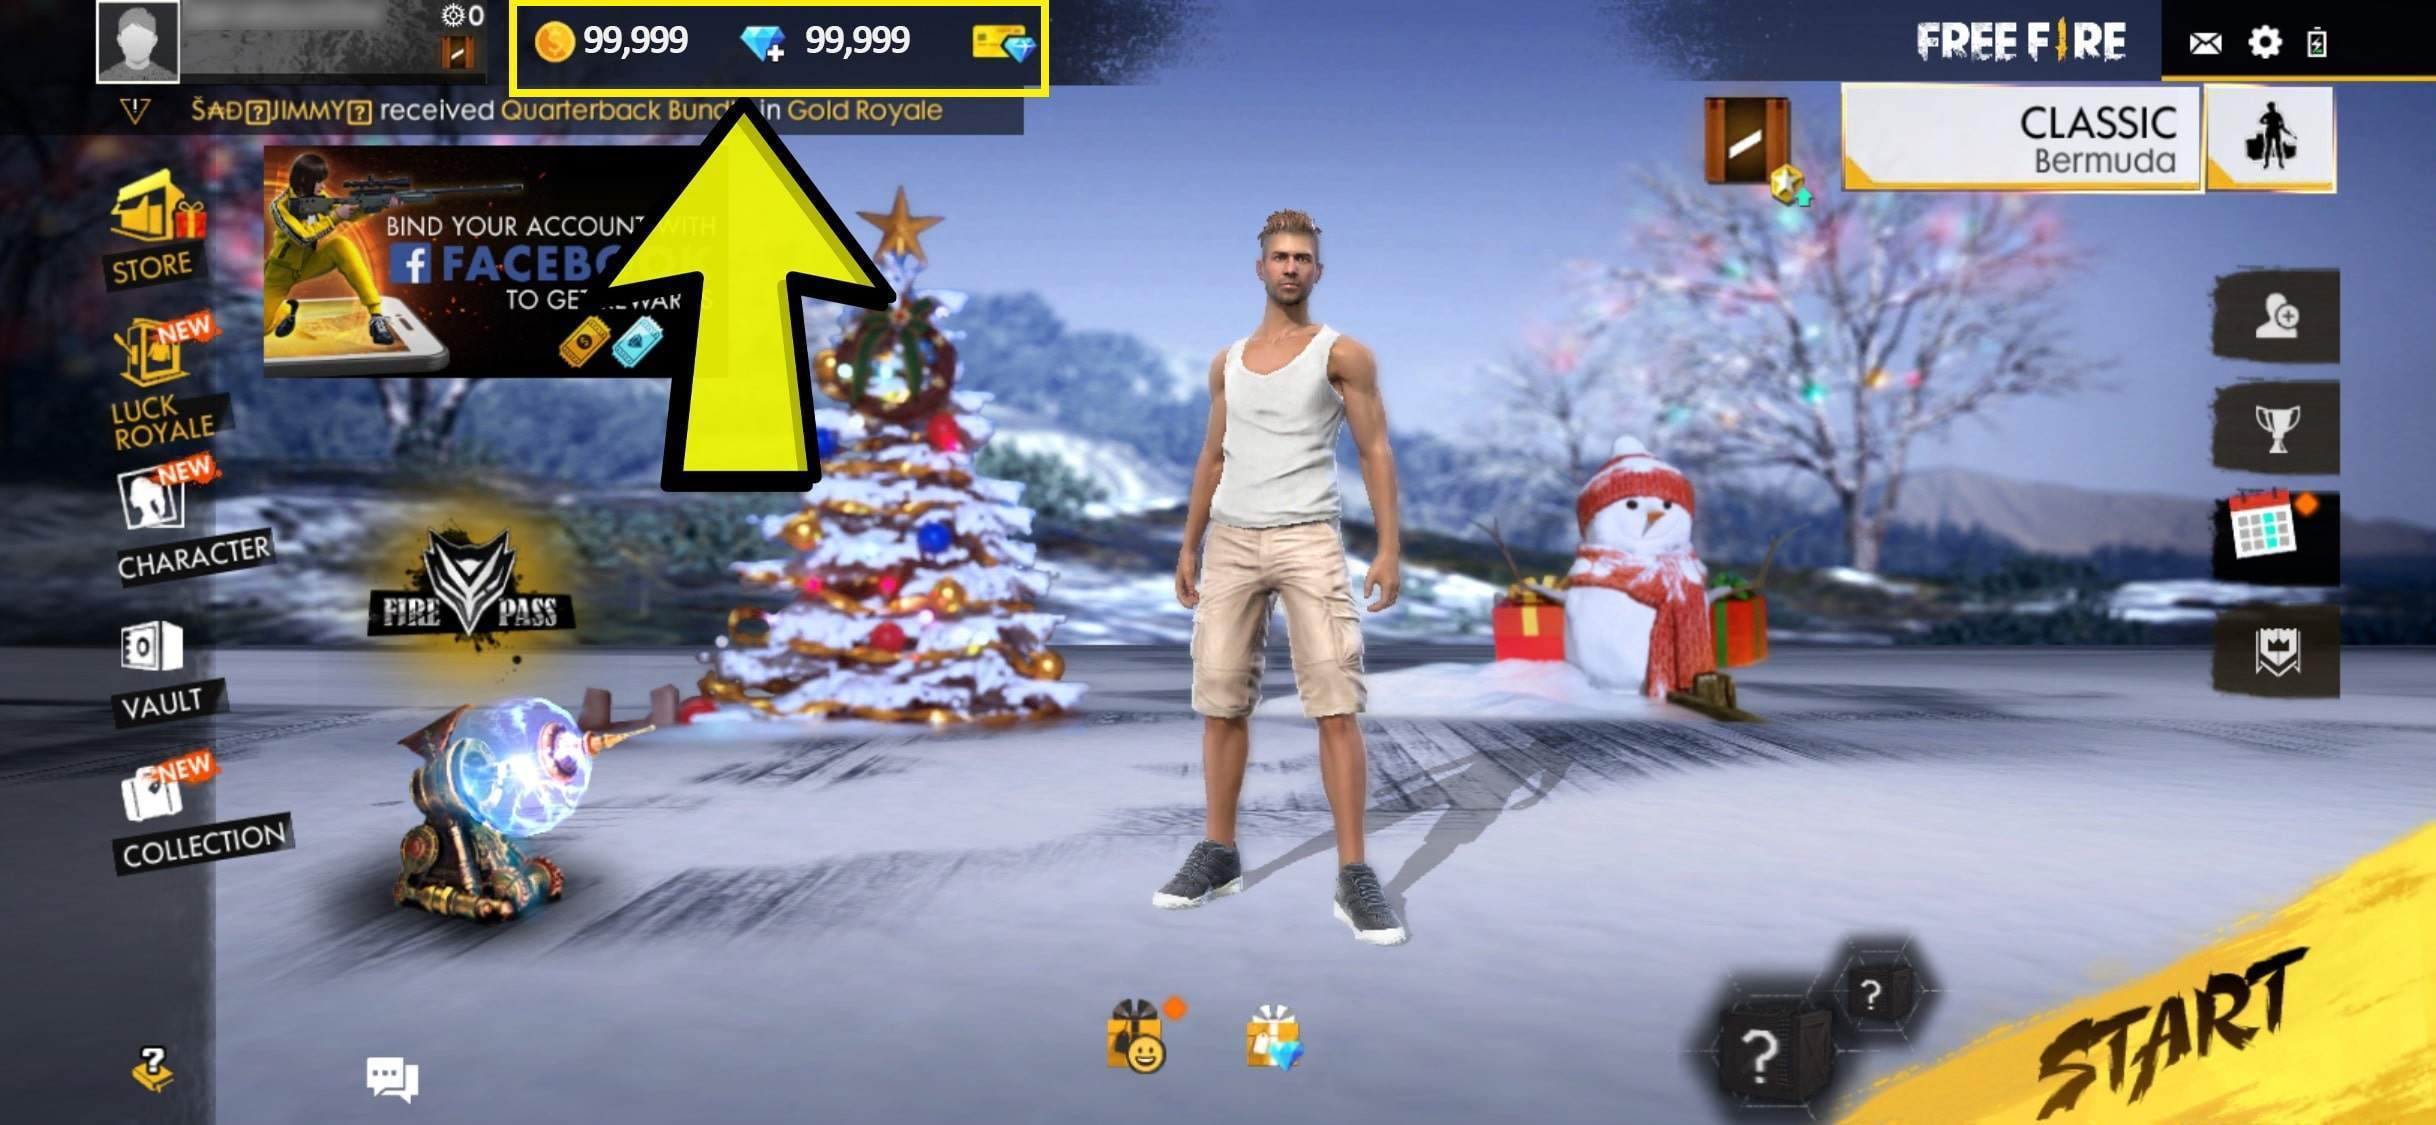 Claim Freefire Unlimited Coins and Diamonds For Free! 100% Working [December 2020]